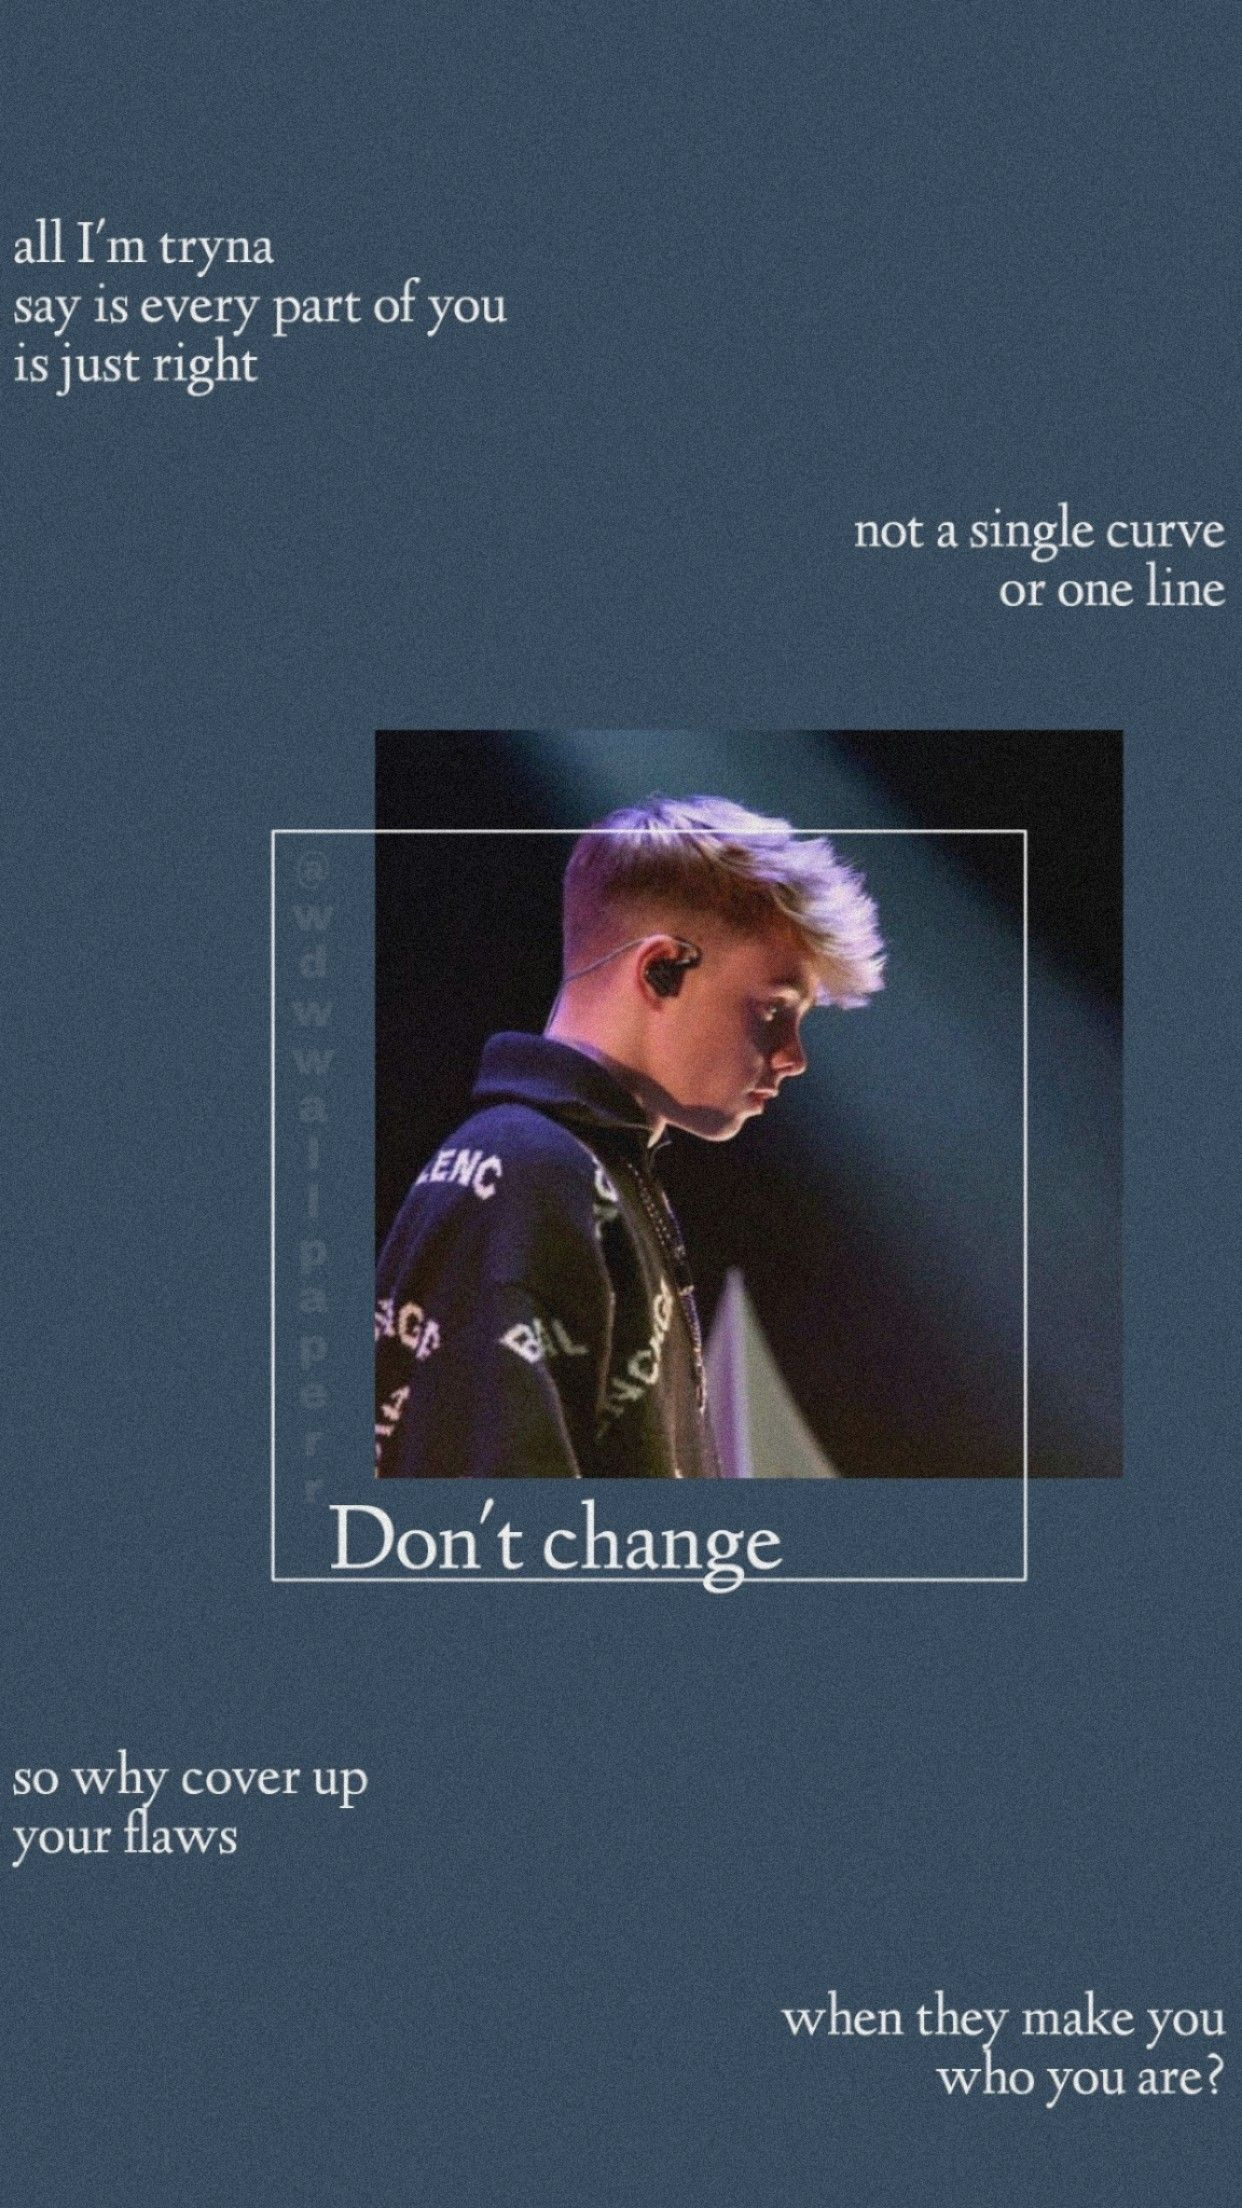 Corbyn Besson Wallpaper Why Don T We Wallpaper Don T Change Wallpaper Song Lyrics Wallpaper Corbyn Besson Why Dont We Boys